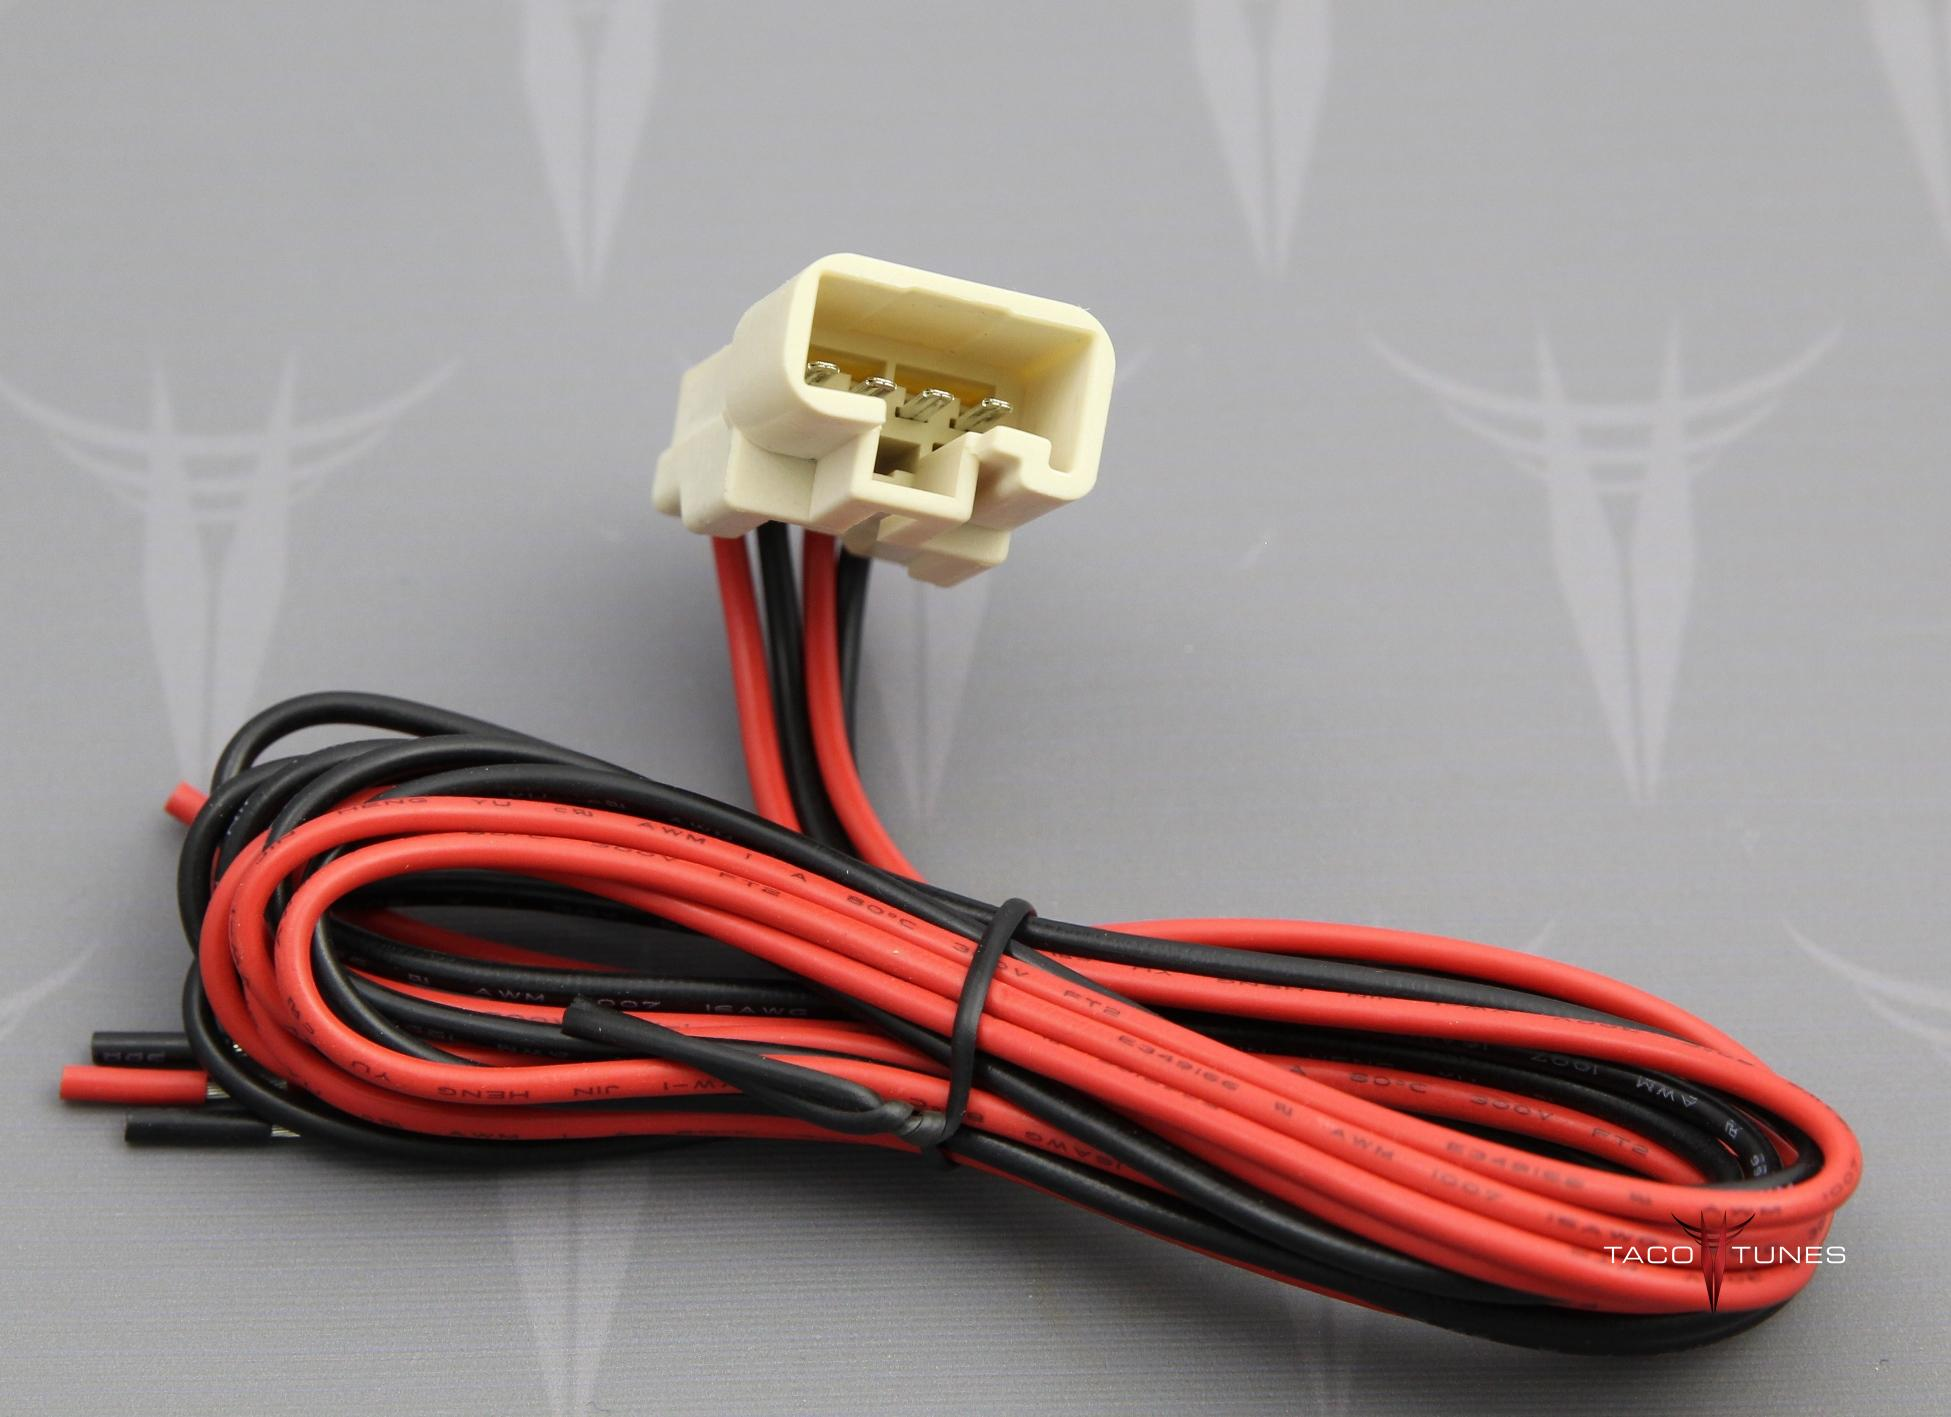 2002 2006 toyota camry tweeter wire harness adapters. Black Bedroom Furniture Sets. Home Design Ideas